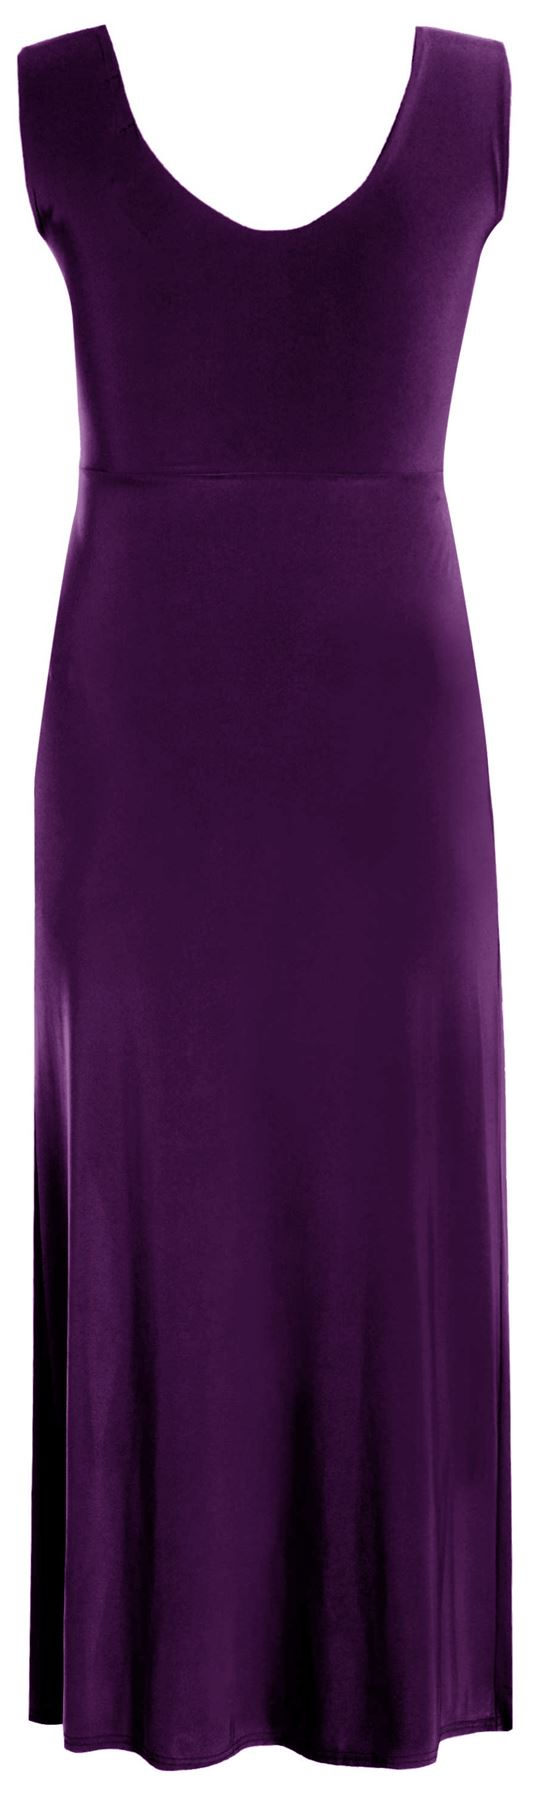 New-Ladies-Plus-Size-Twist-Knot-Panel-Long-Evening-Maxi-Dress